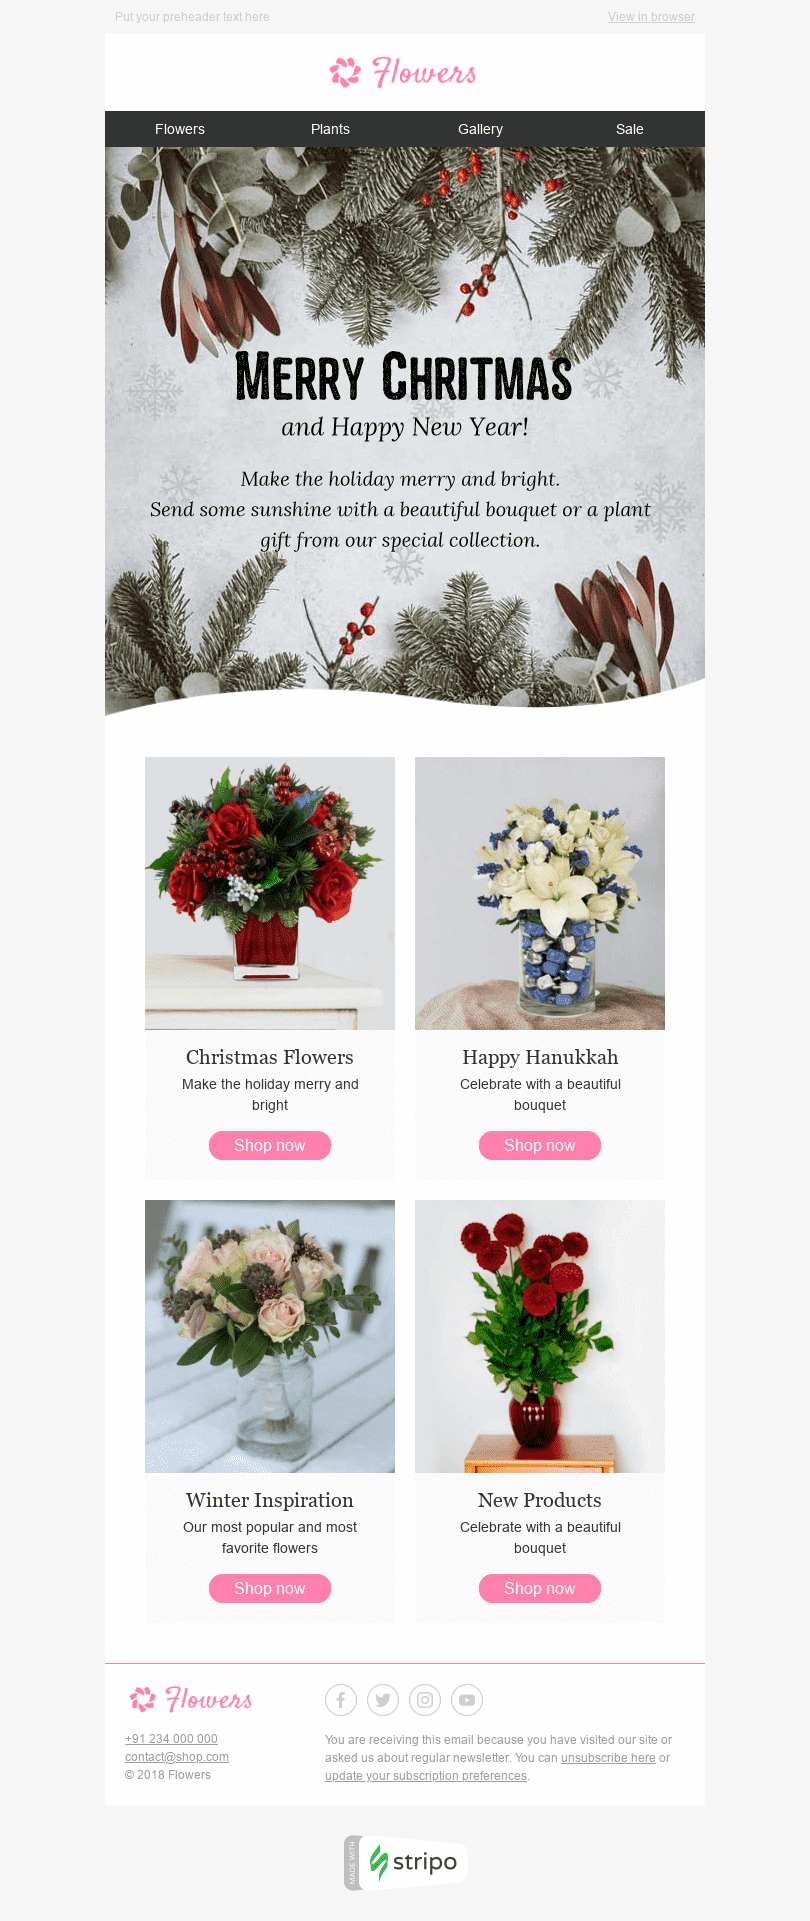 Stripo Gifts Flowers Holiday newsletter Christmas New Year Winter Inspiration email web